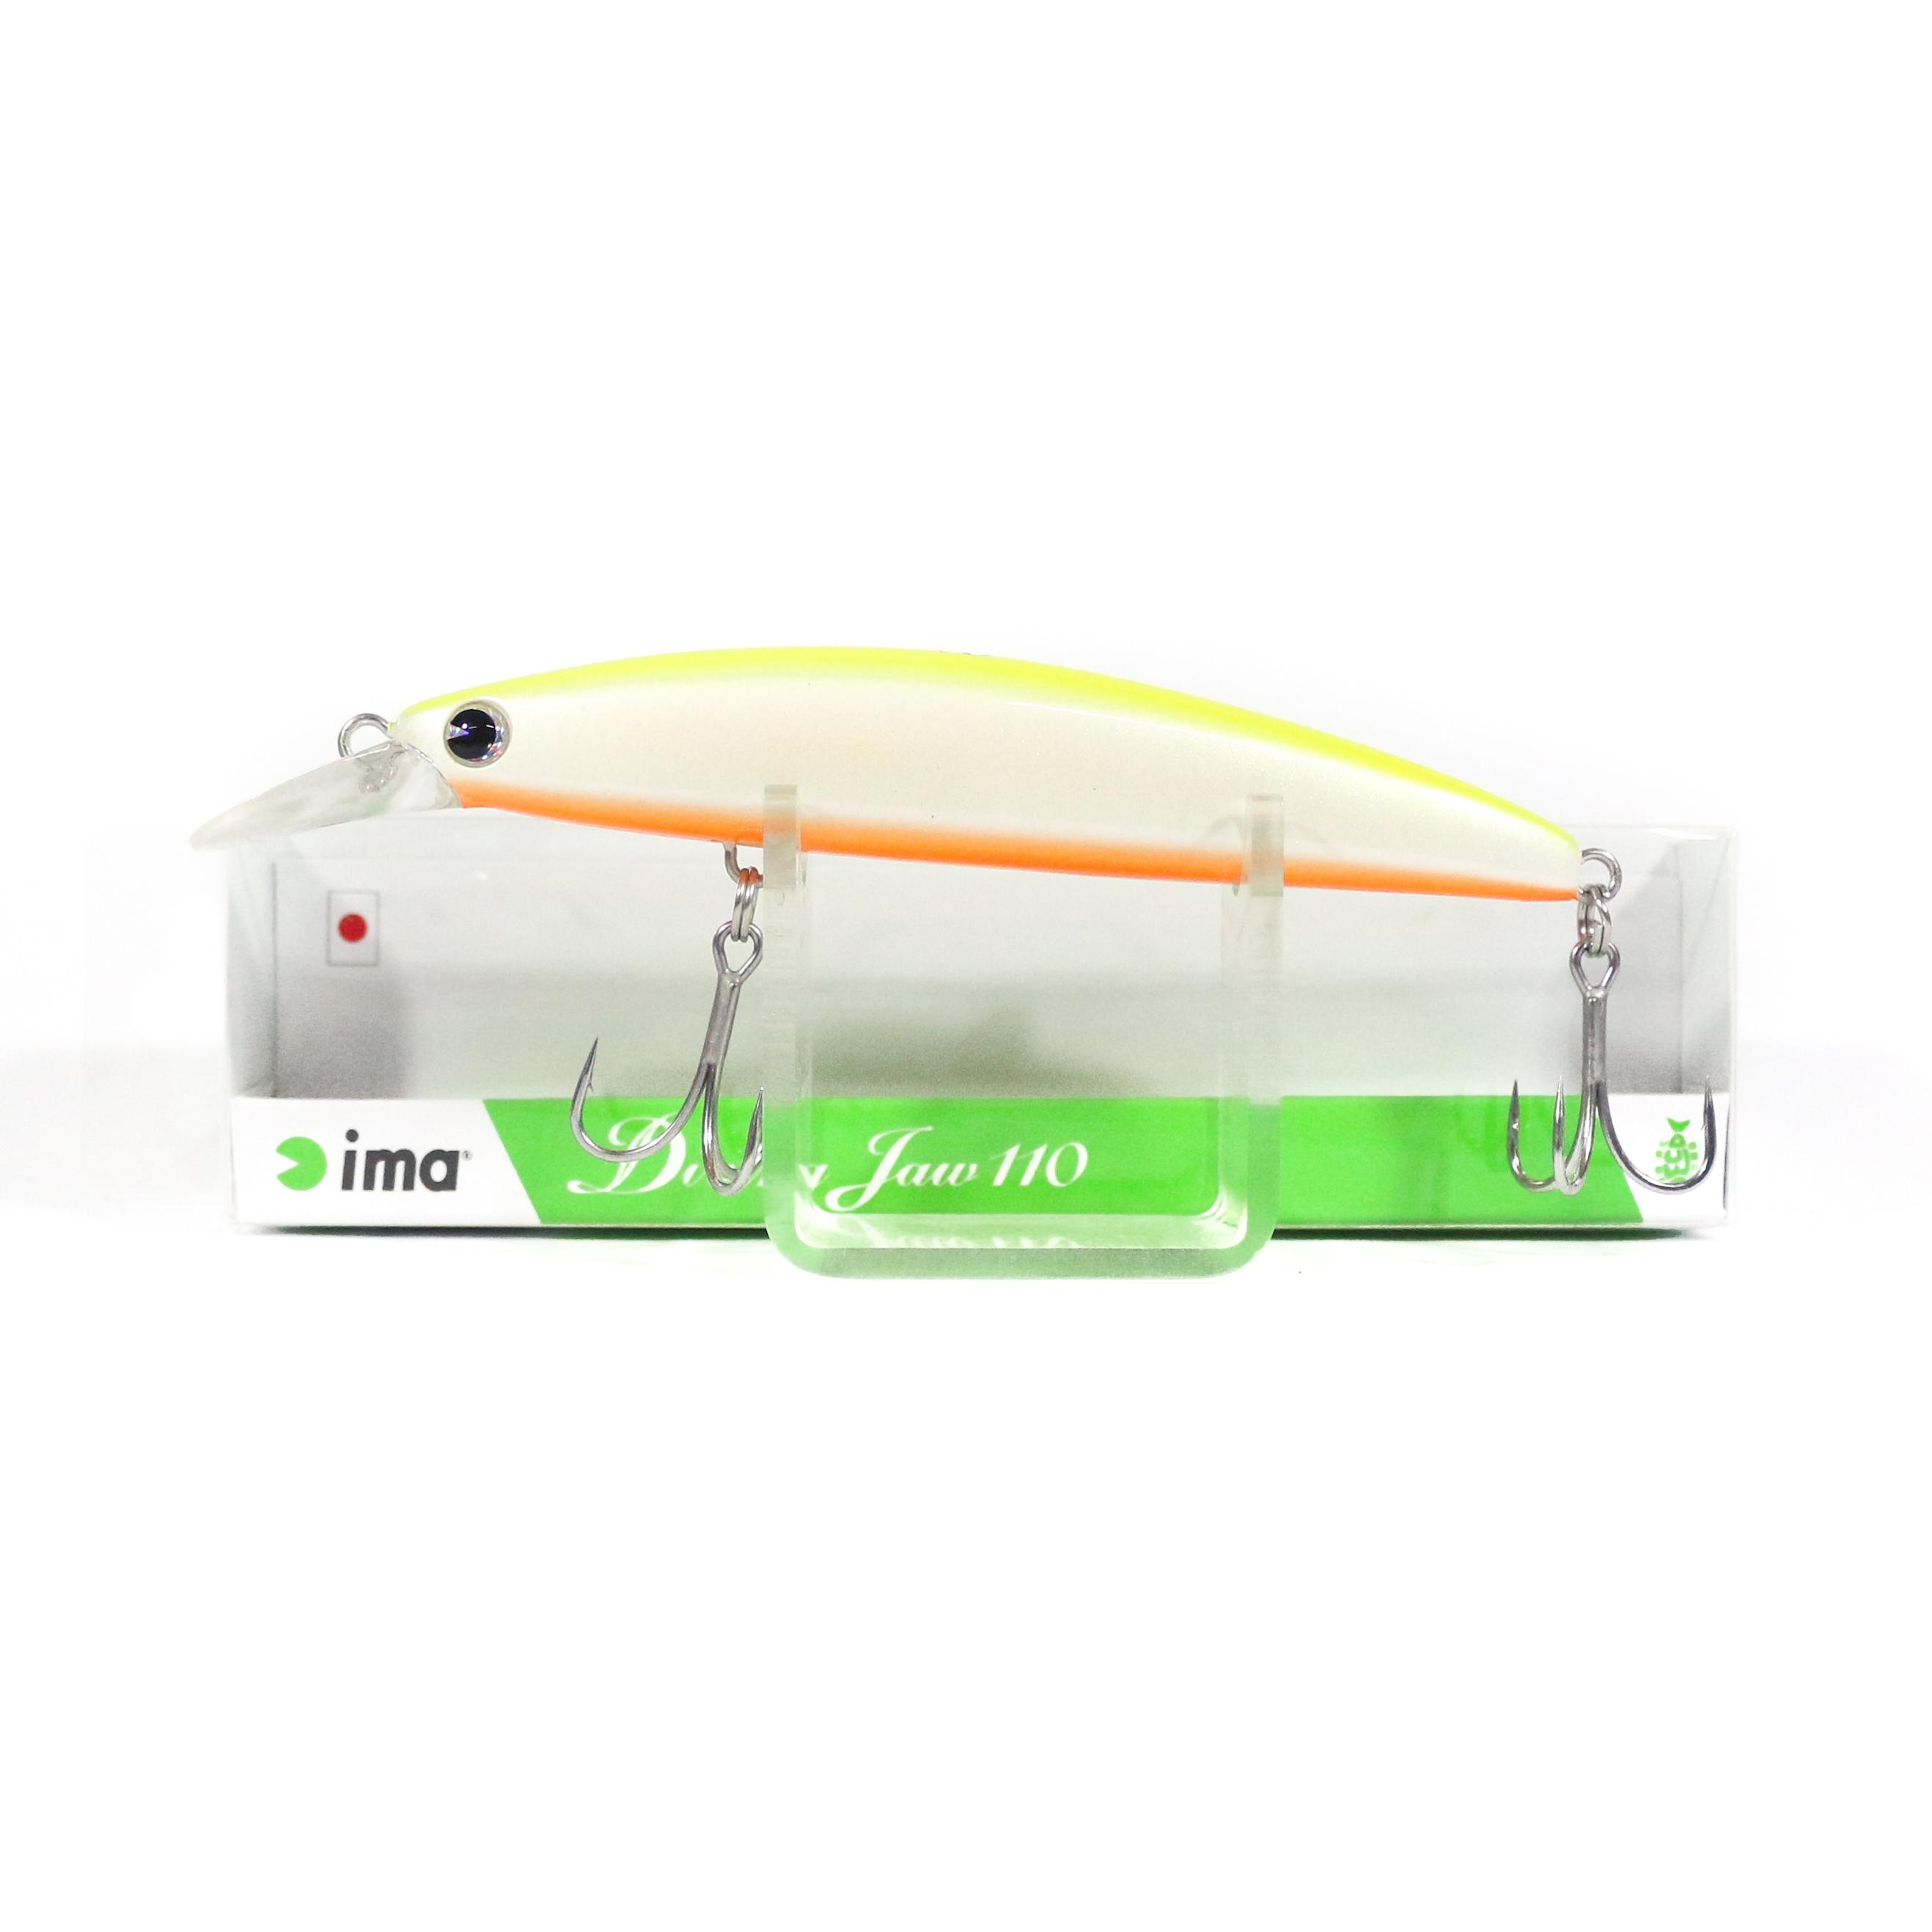 Sale Ima Diving Jaw 110 Floating Lure 002 (7861)